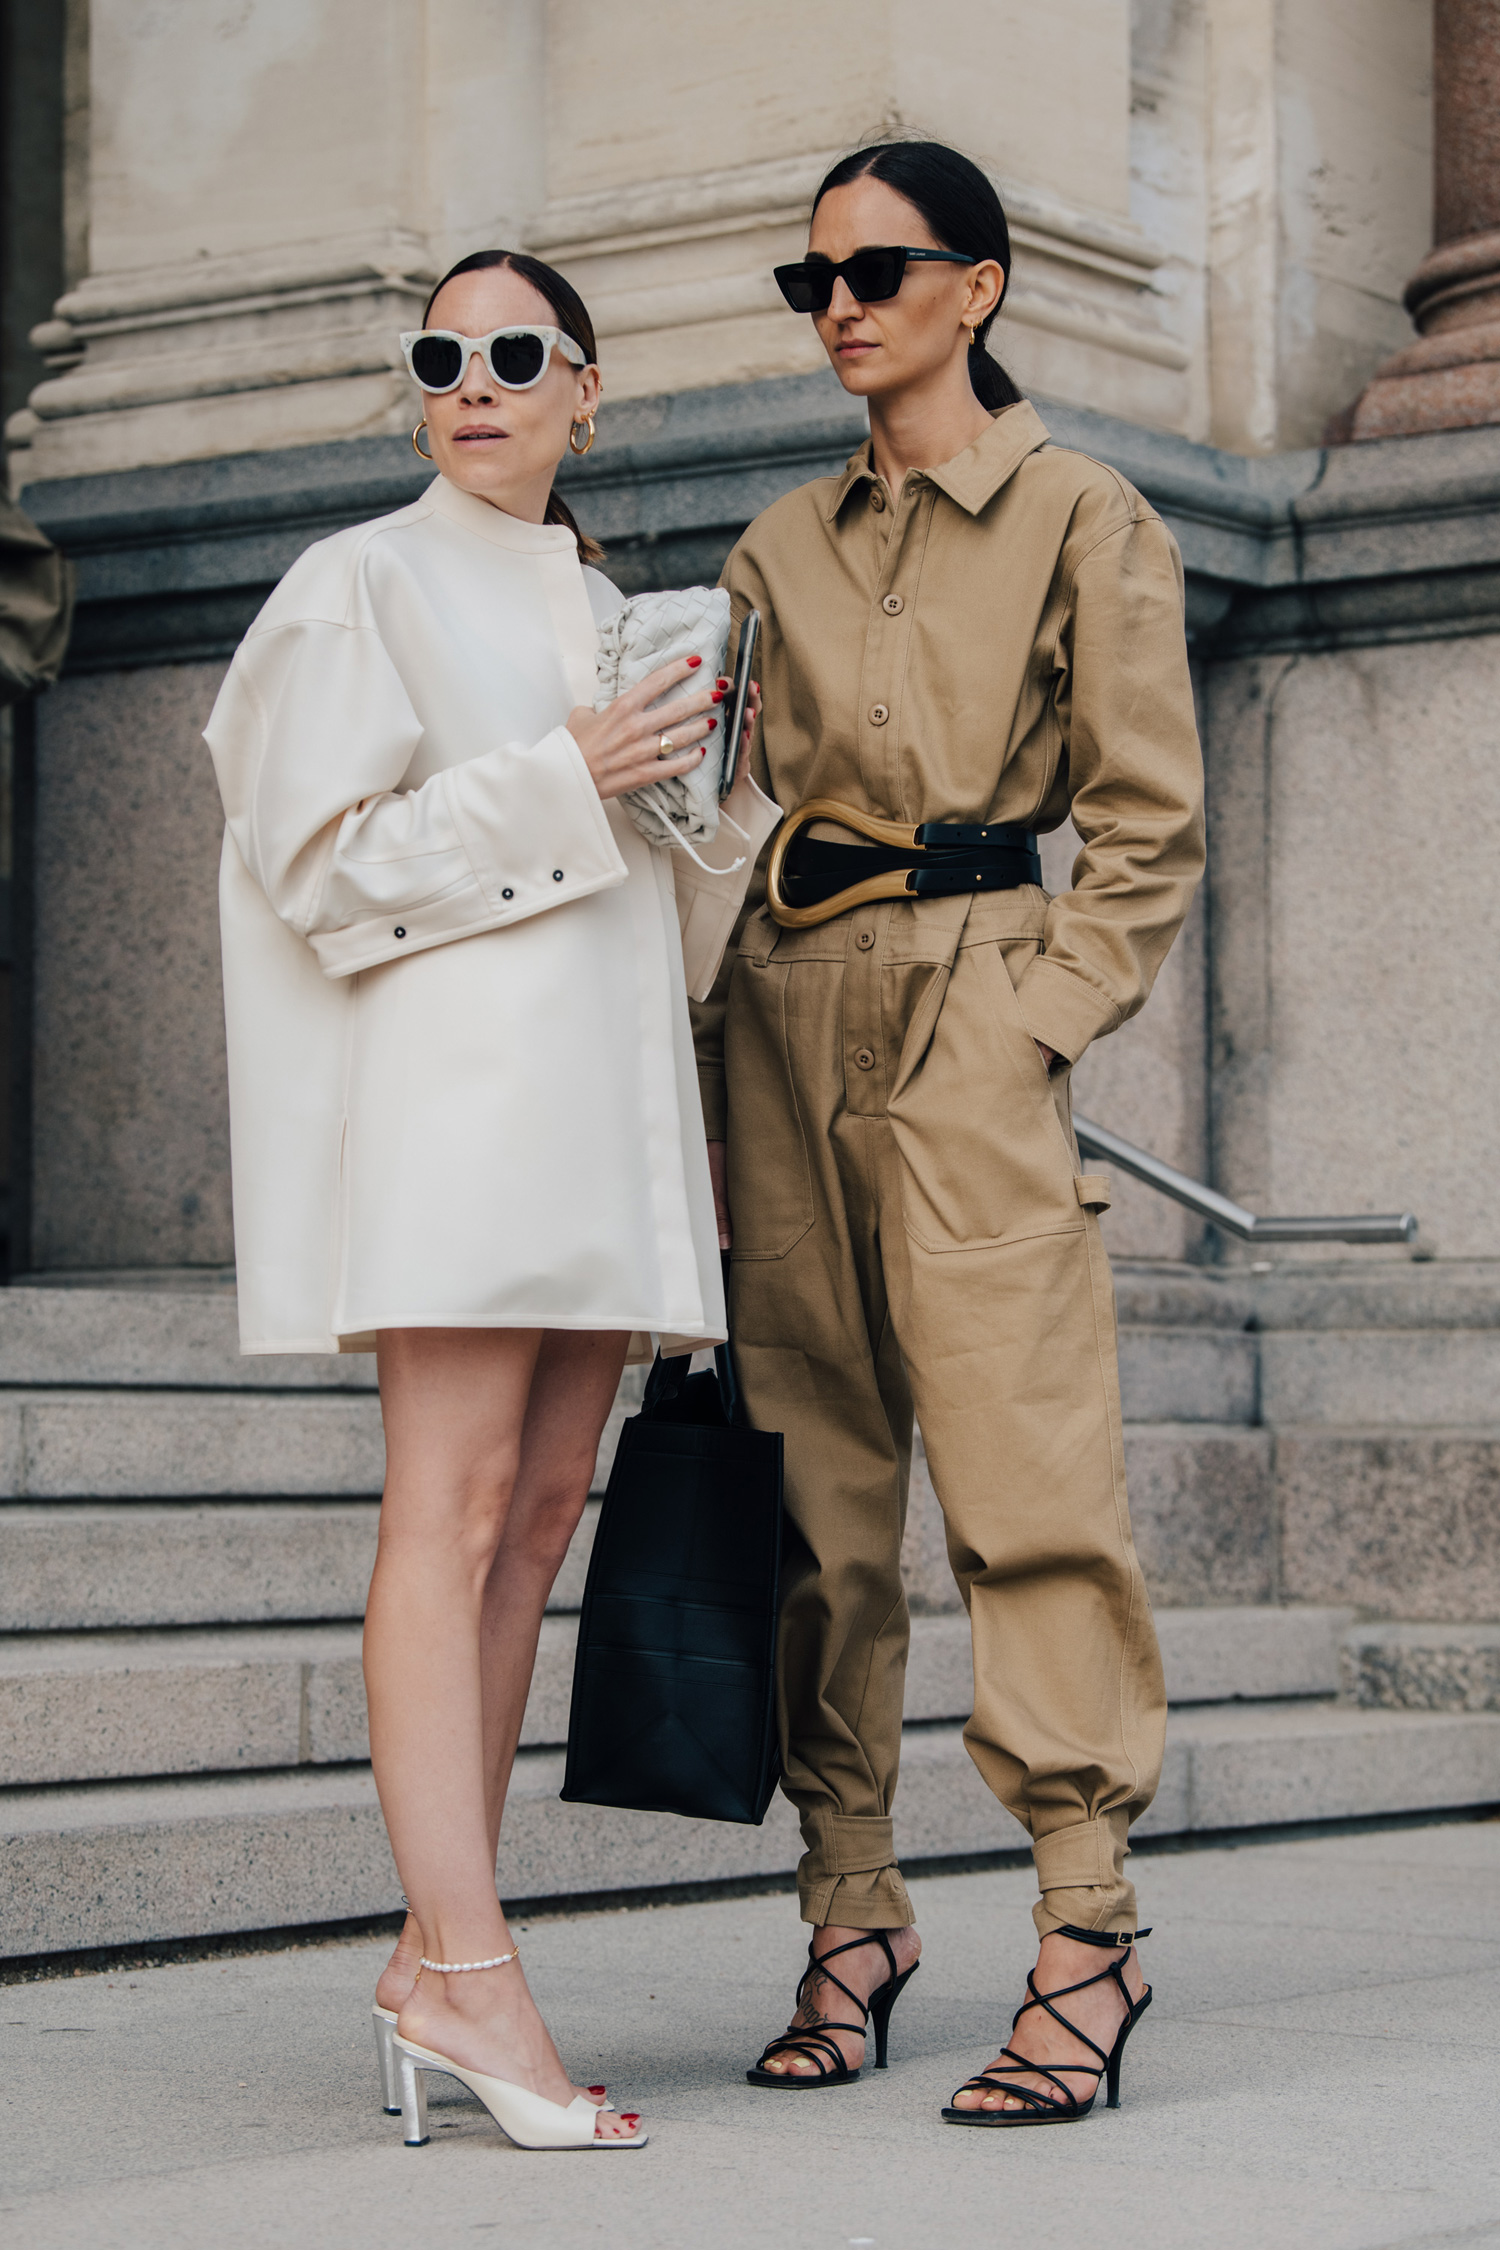 Two women snapped in stylish goats and overalls